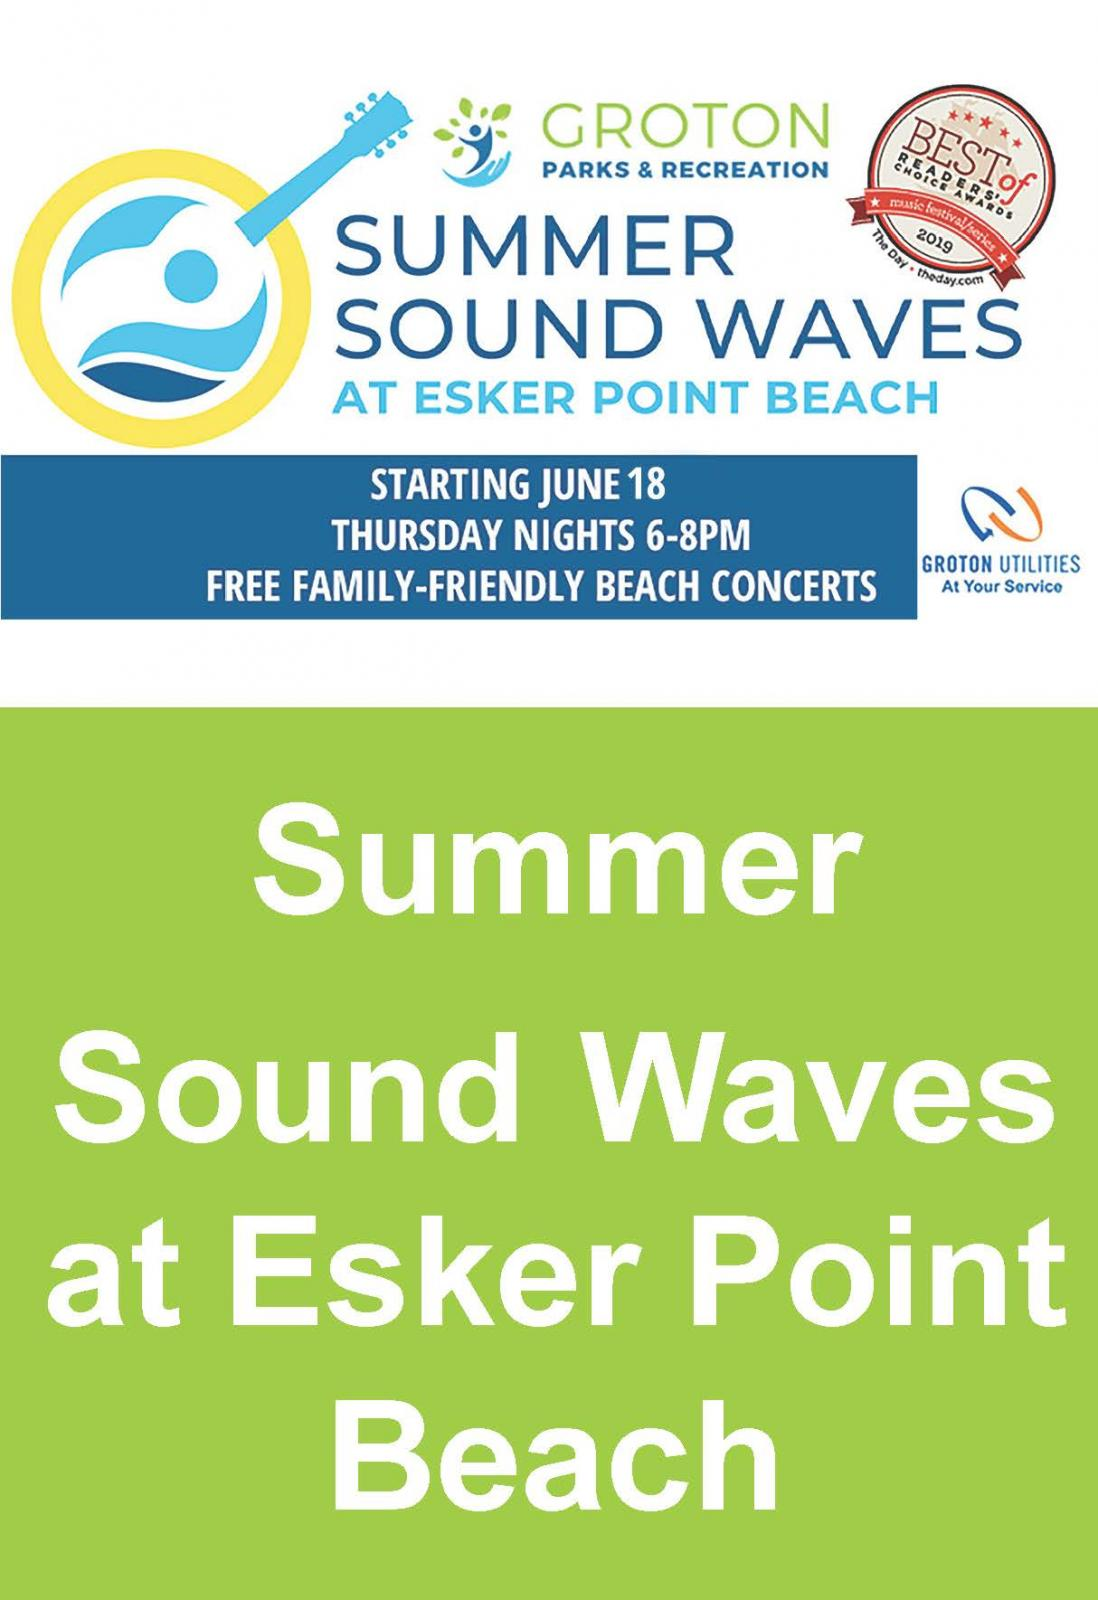 Event Promo Photo For Summer Sound Waves at Esker Point Beach